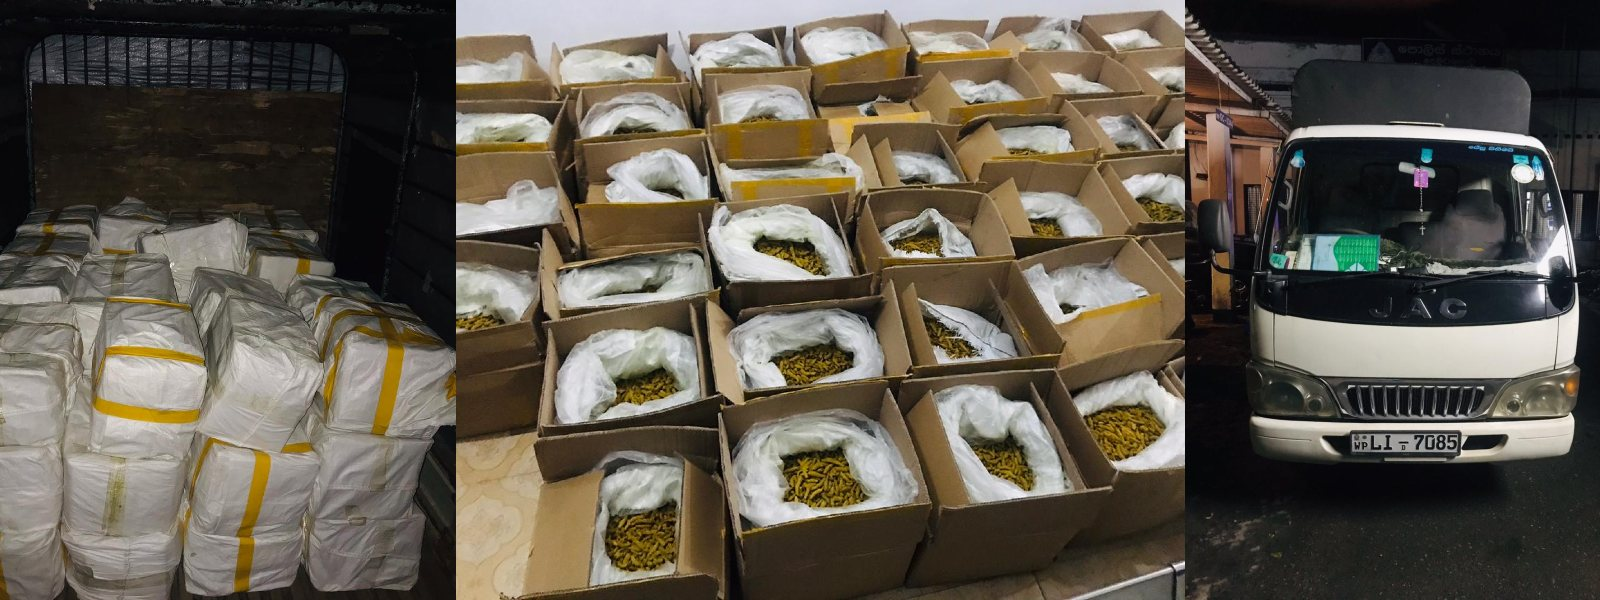 OVER 1000KG OF ILLEGALLY IMPORTED TURMERIC SEIZED